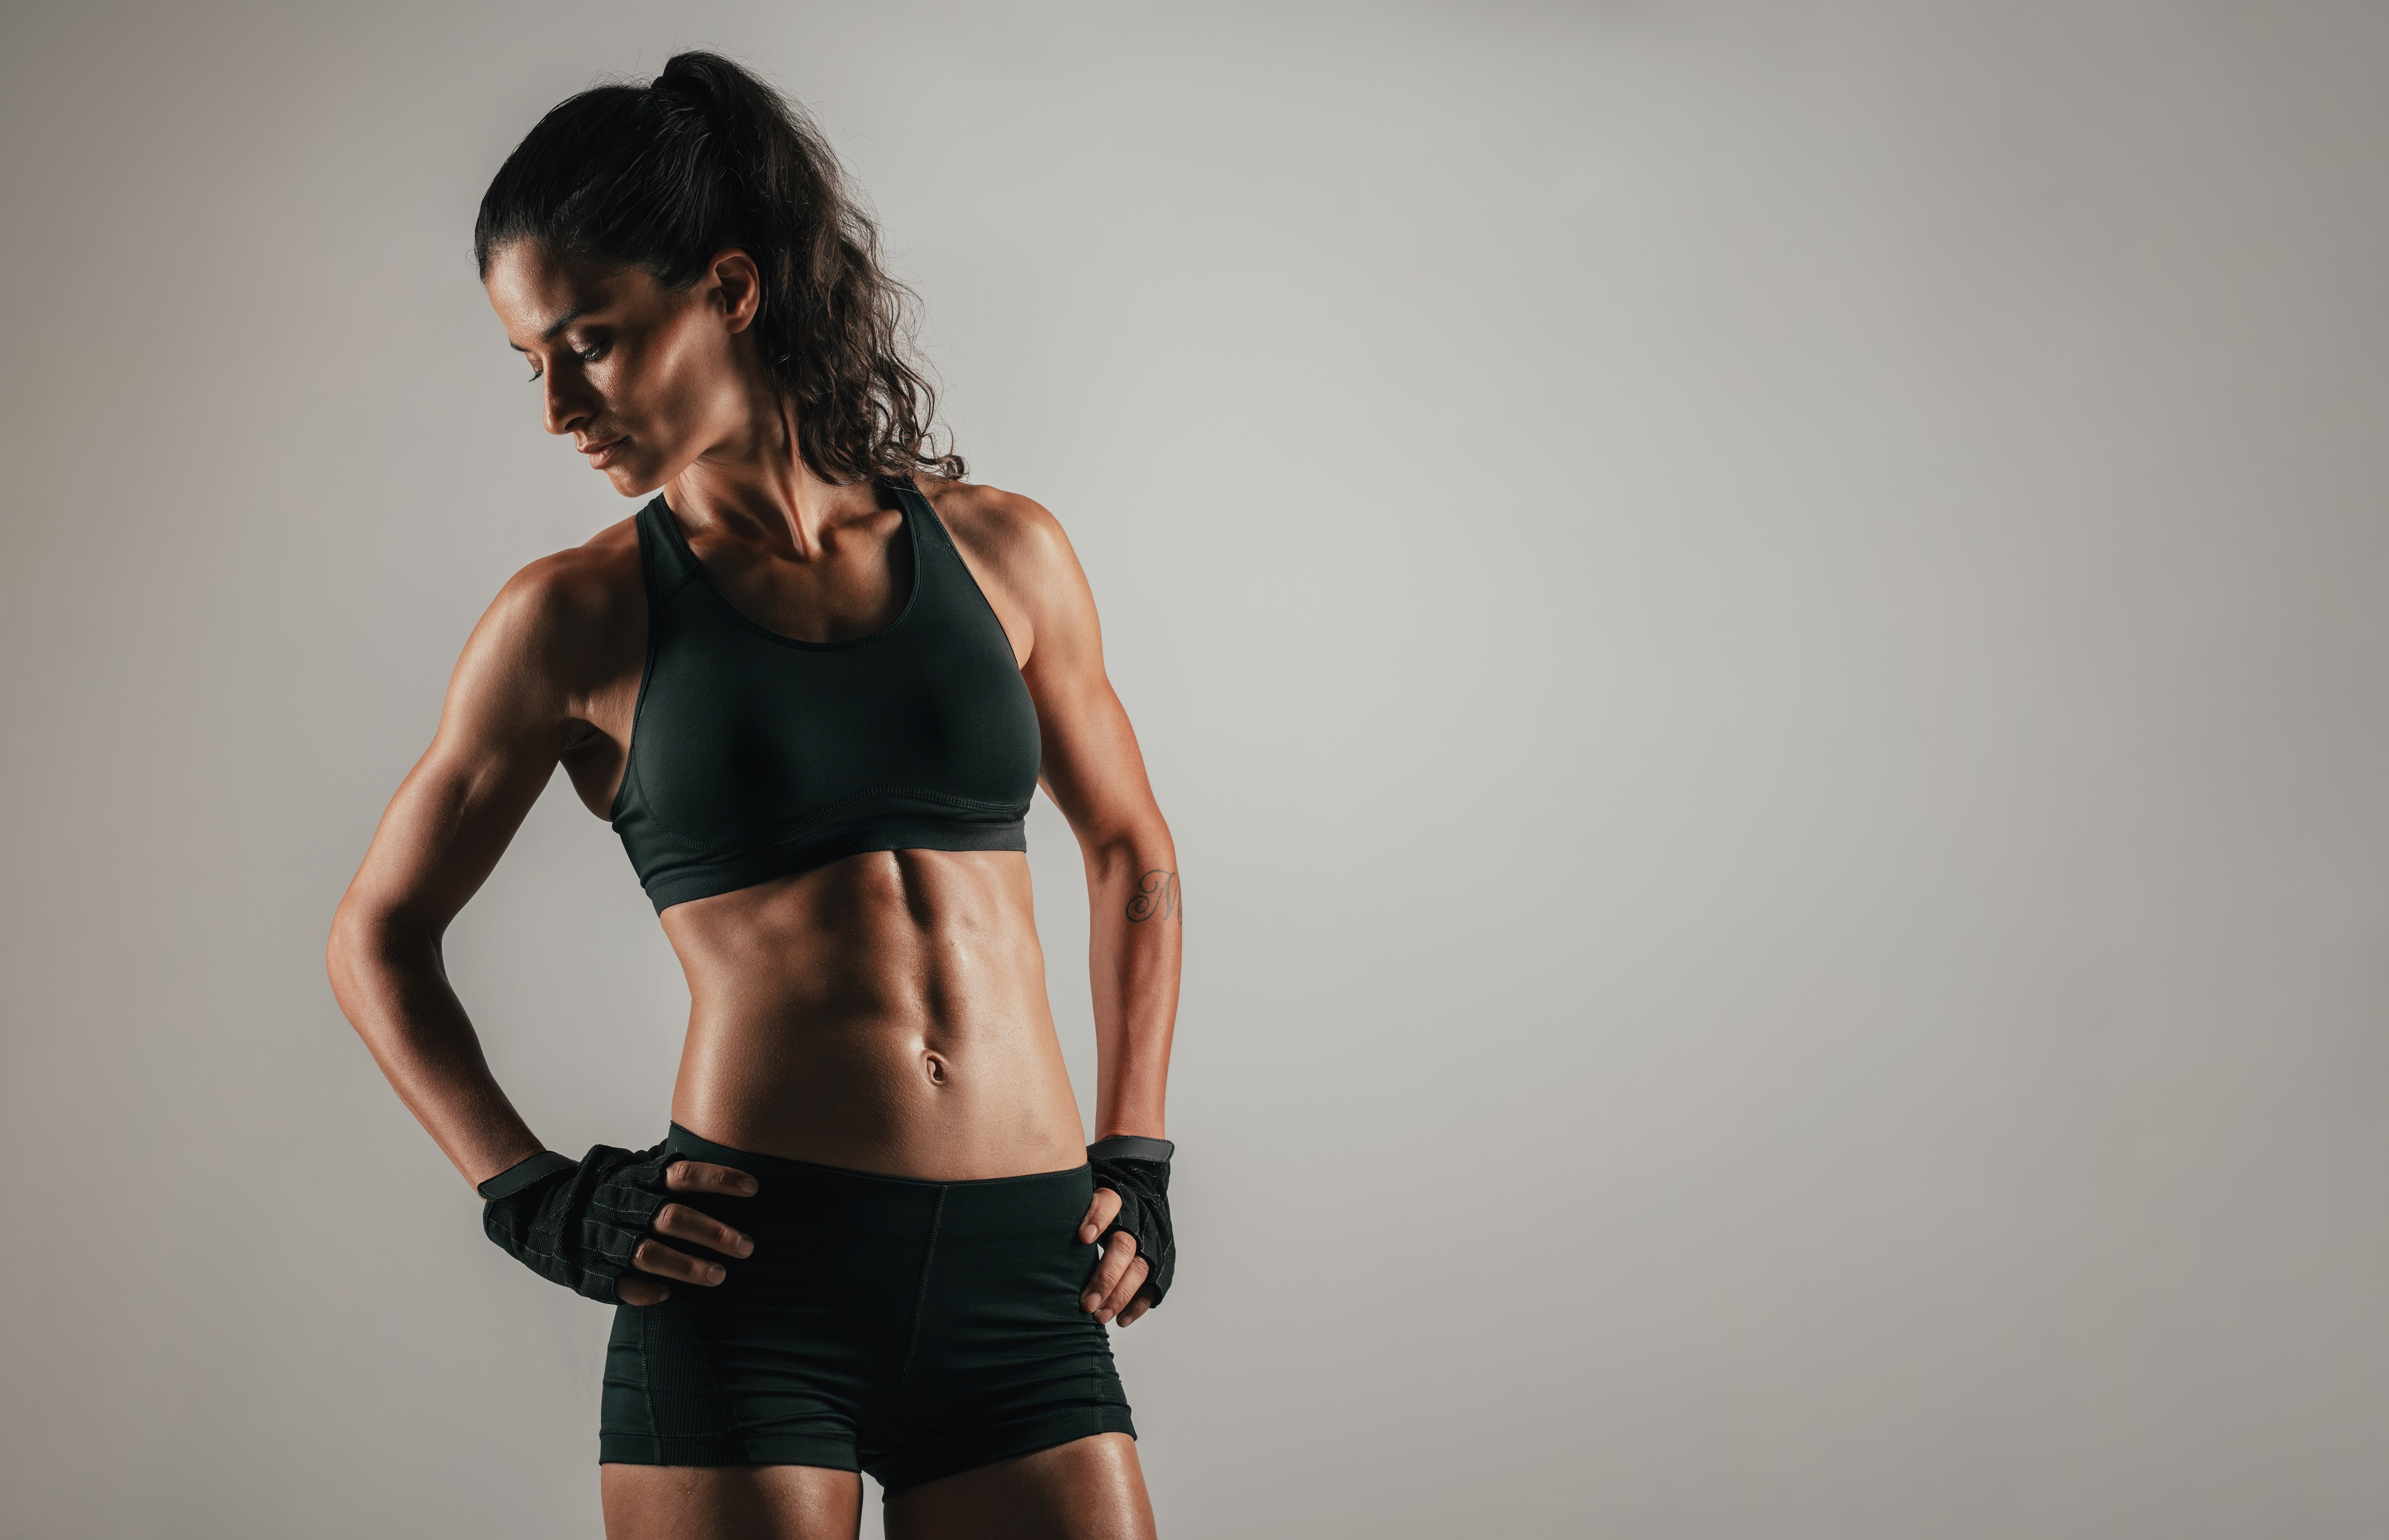 Mujer fit